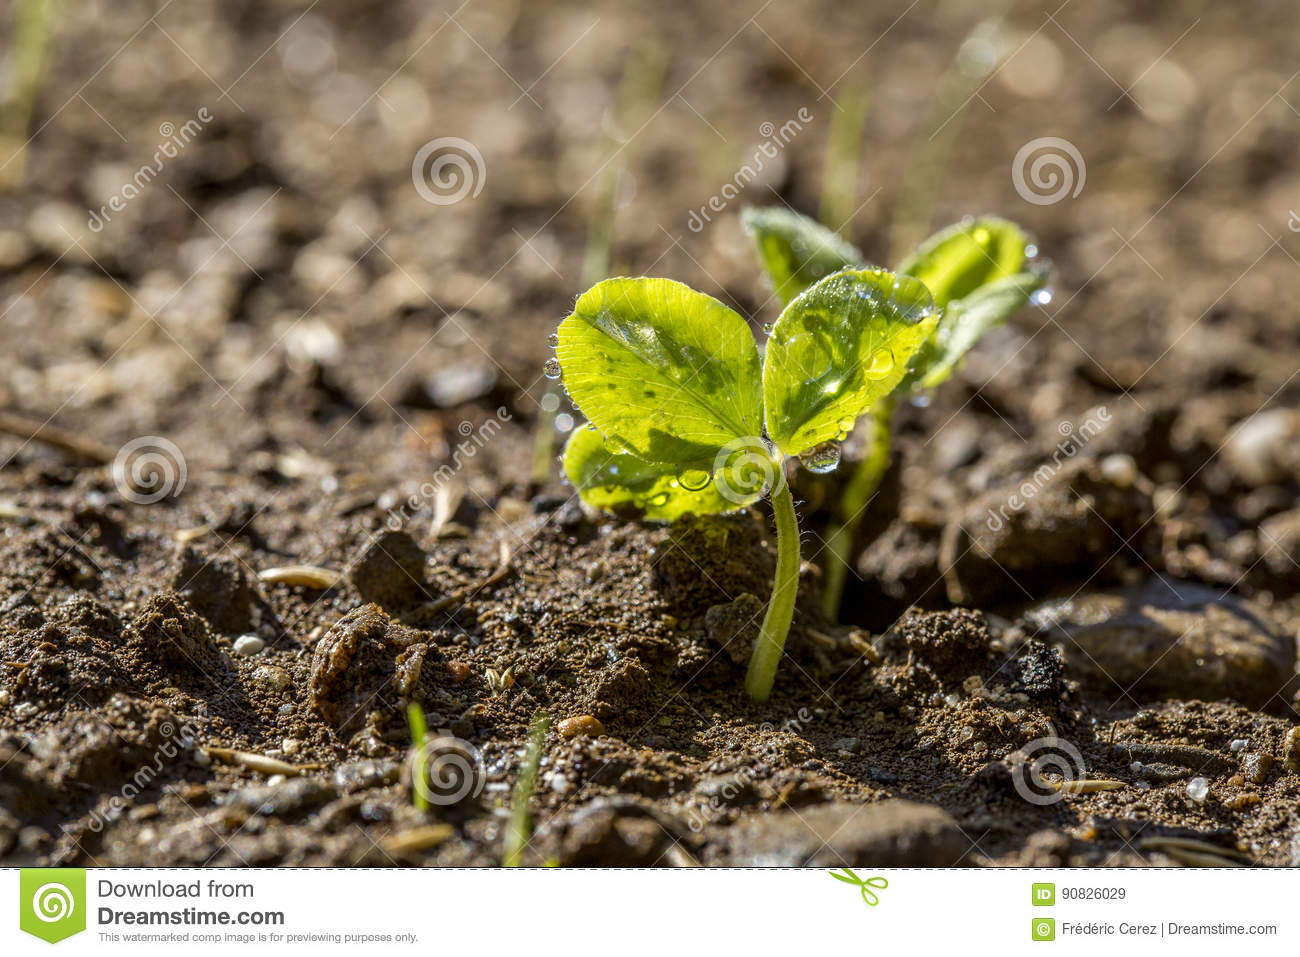 Clover sprout closeup stock image. Image of grass, garden - 90826029